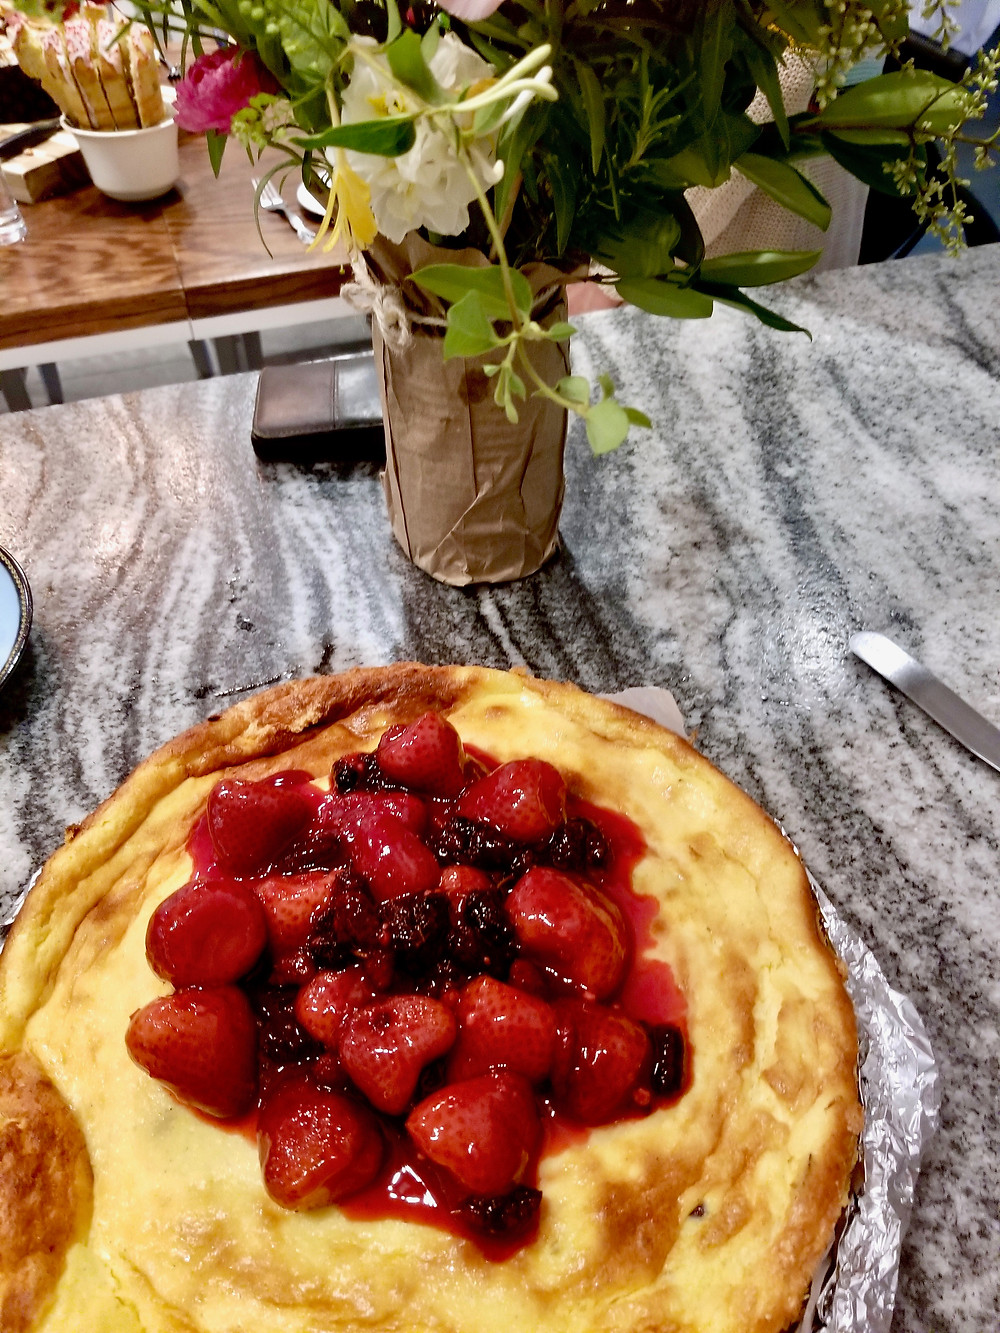 Baked farmer's cheese with berries on top on the counter with a bouquet of flowers